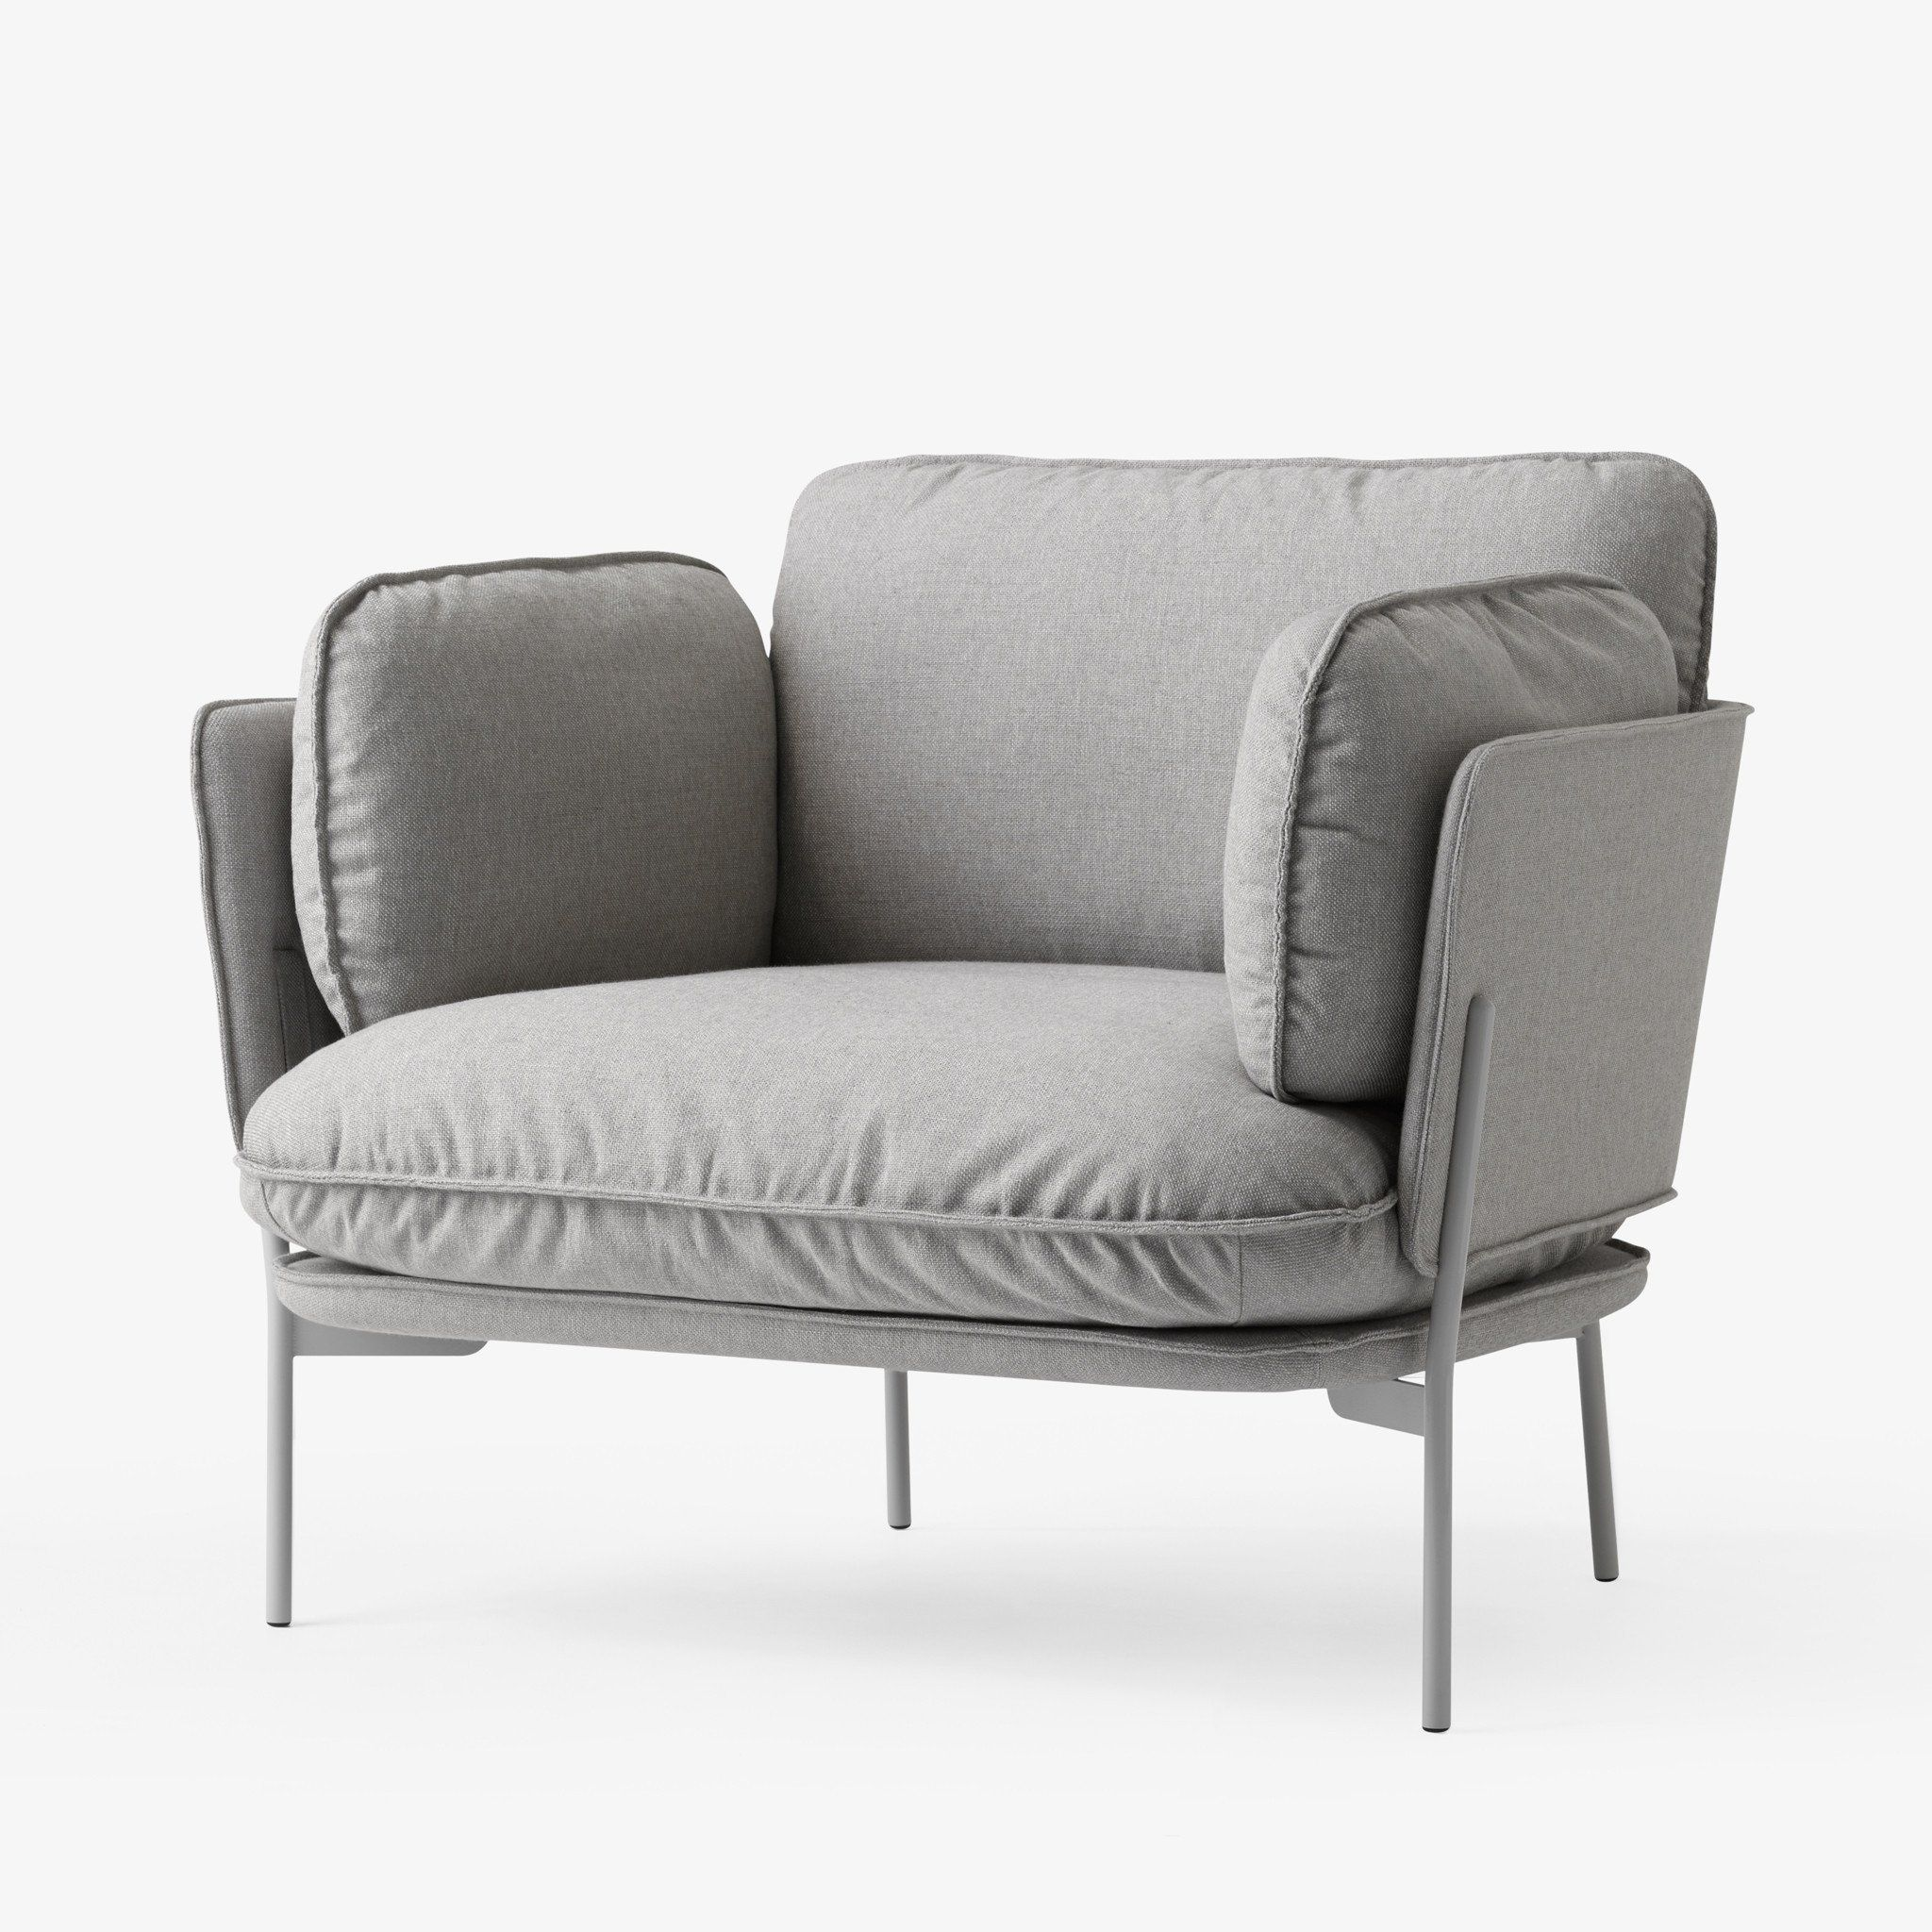 Cloud One Seater Ln1 By Tradition Chair Lounge Furniture Design Sofa Chair